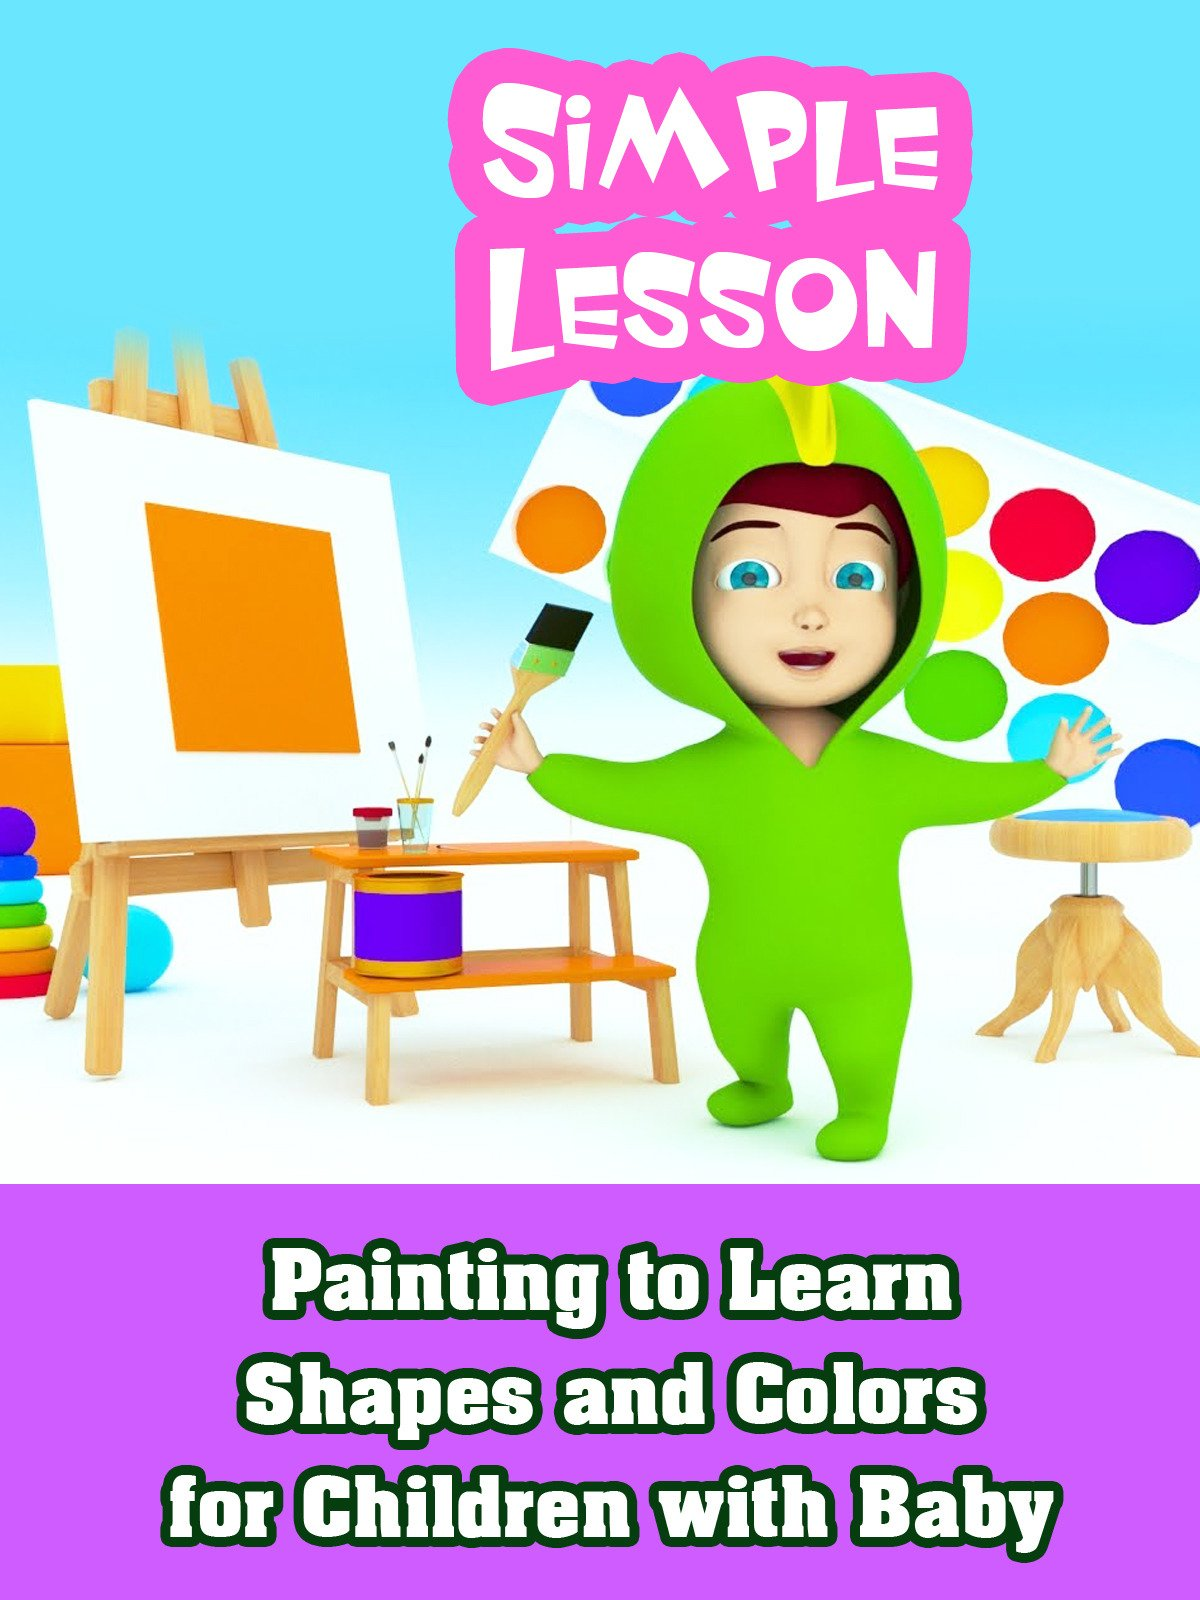 Painting to Learn Shapes and Colors for Children with Baby